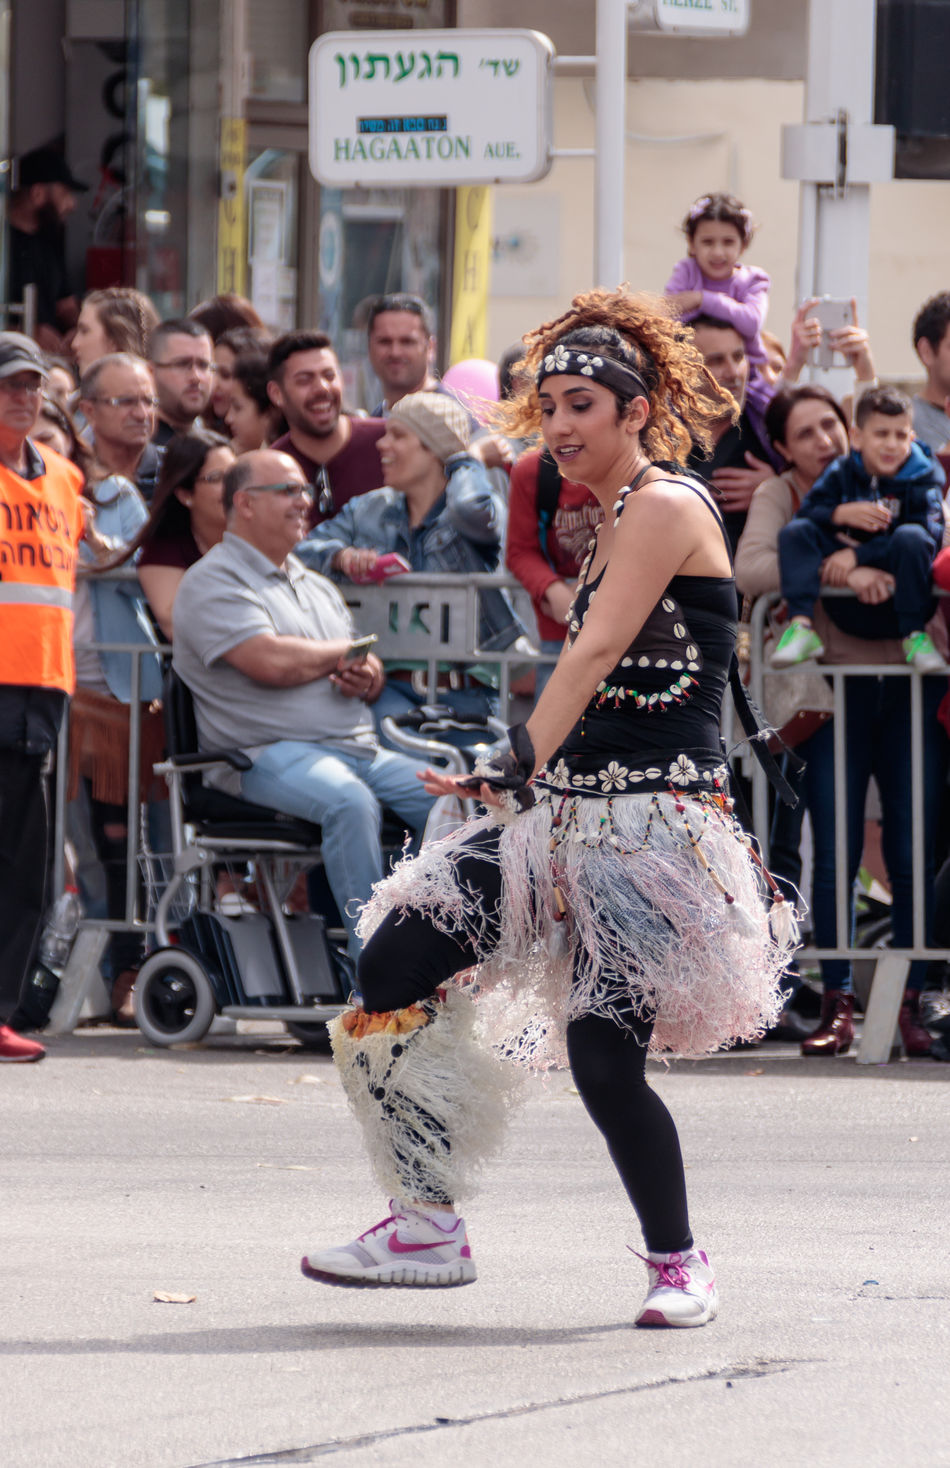 Nahariyya, Israel, March 10, 2017 : Participants at the traditional annual сarnival parade - dancer in exotic costume - dances near the viewers on the street in Nahariyya, Israel Adloyada Adult Beauty Carnival Celebration Colorful Costume Culture Day Decoration Dressed Entertainment Festival Fun Happy Israel Masquerade Nahariyya Outdoors Parade Party People Style Traditional Travel